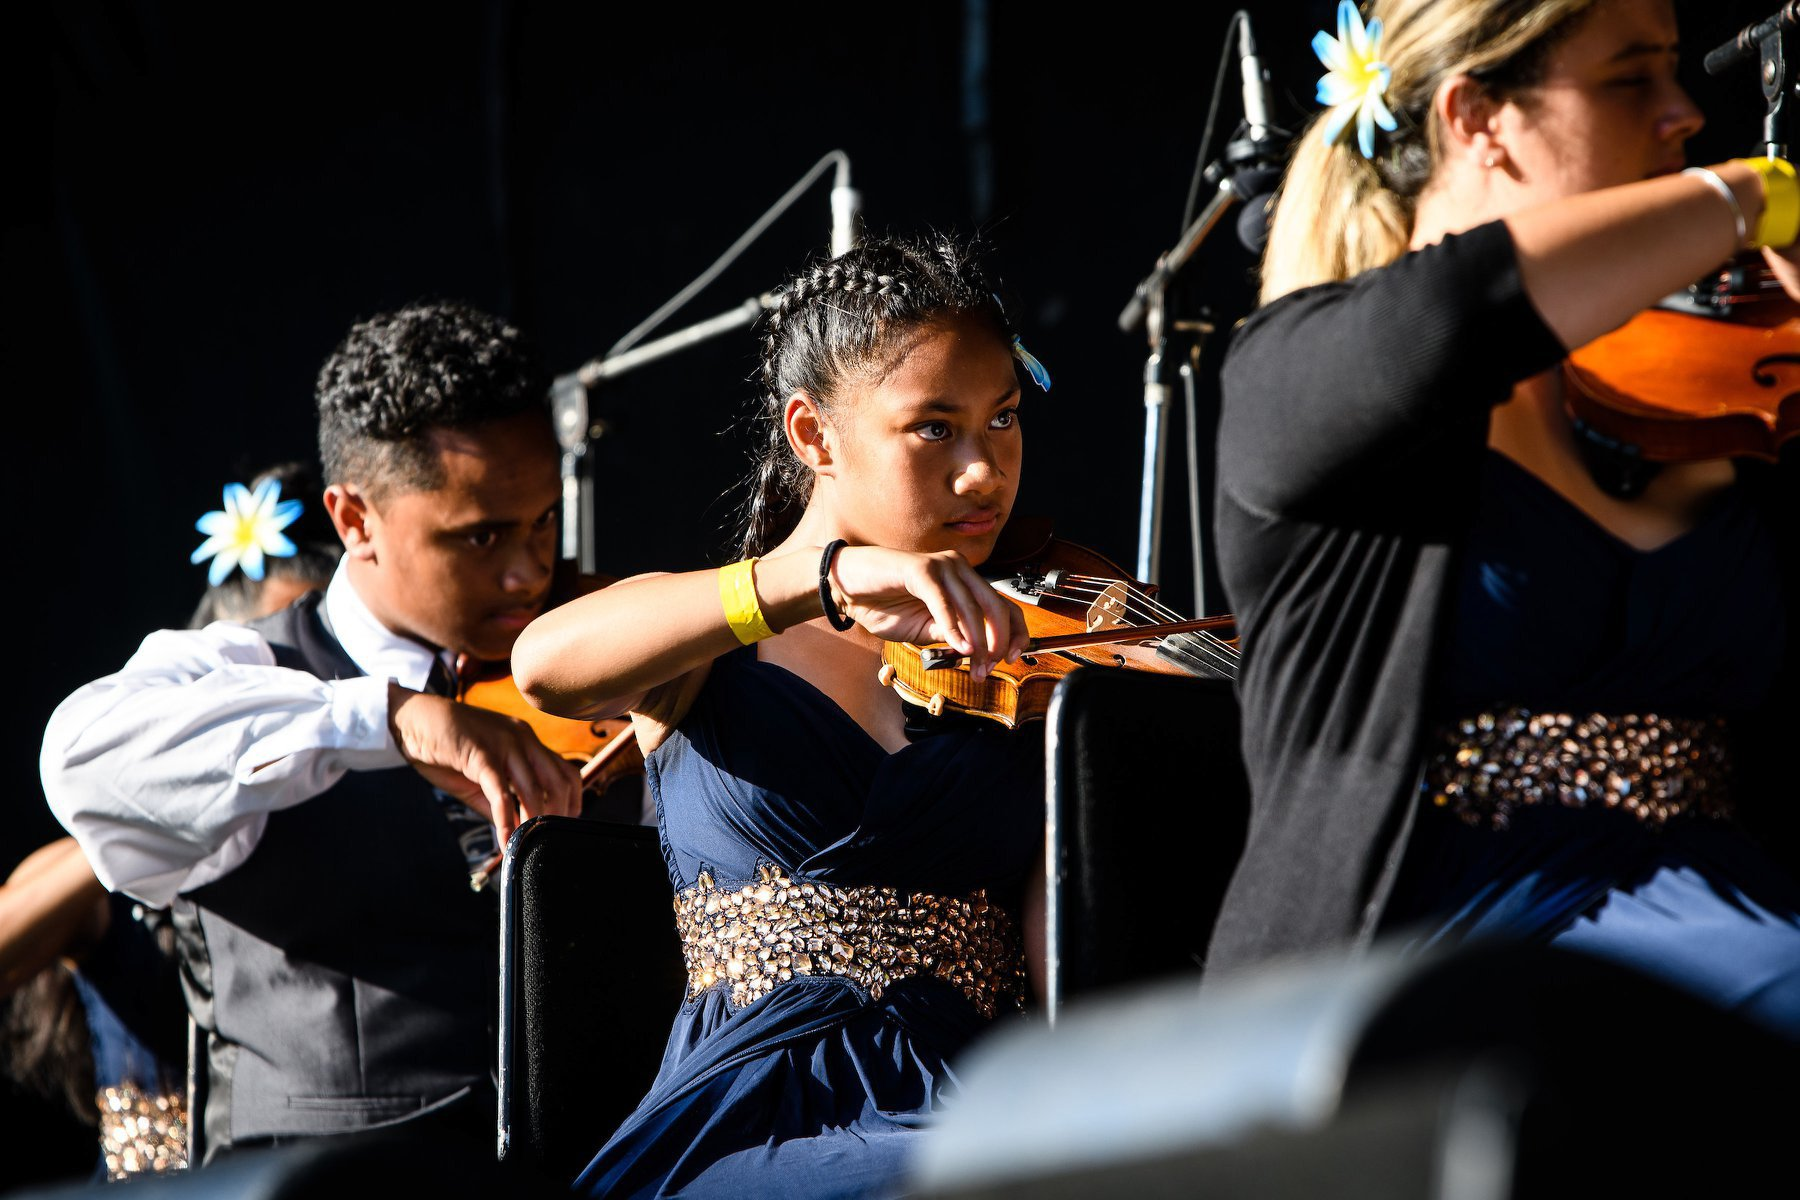 Members of the Virtuoso String Orchestra (from left) Toloa Faraimo, Rochelle Pese Akerise and...